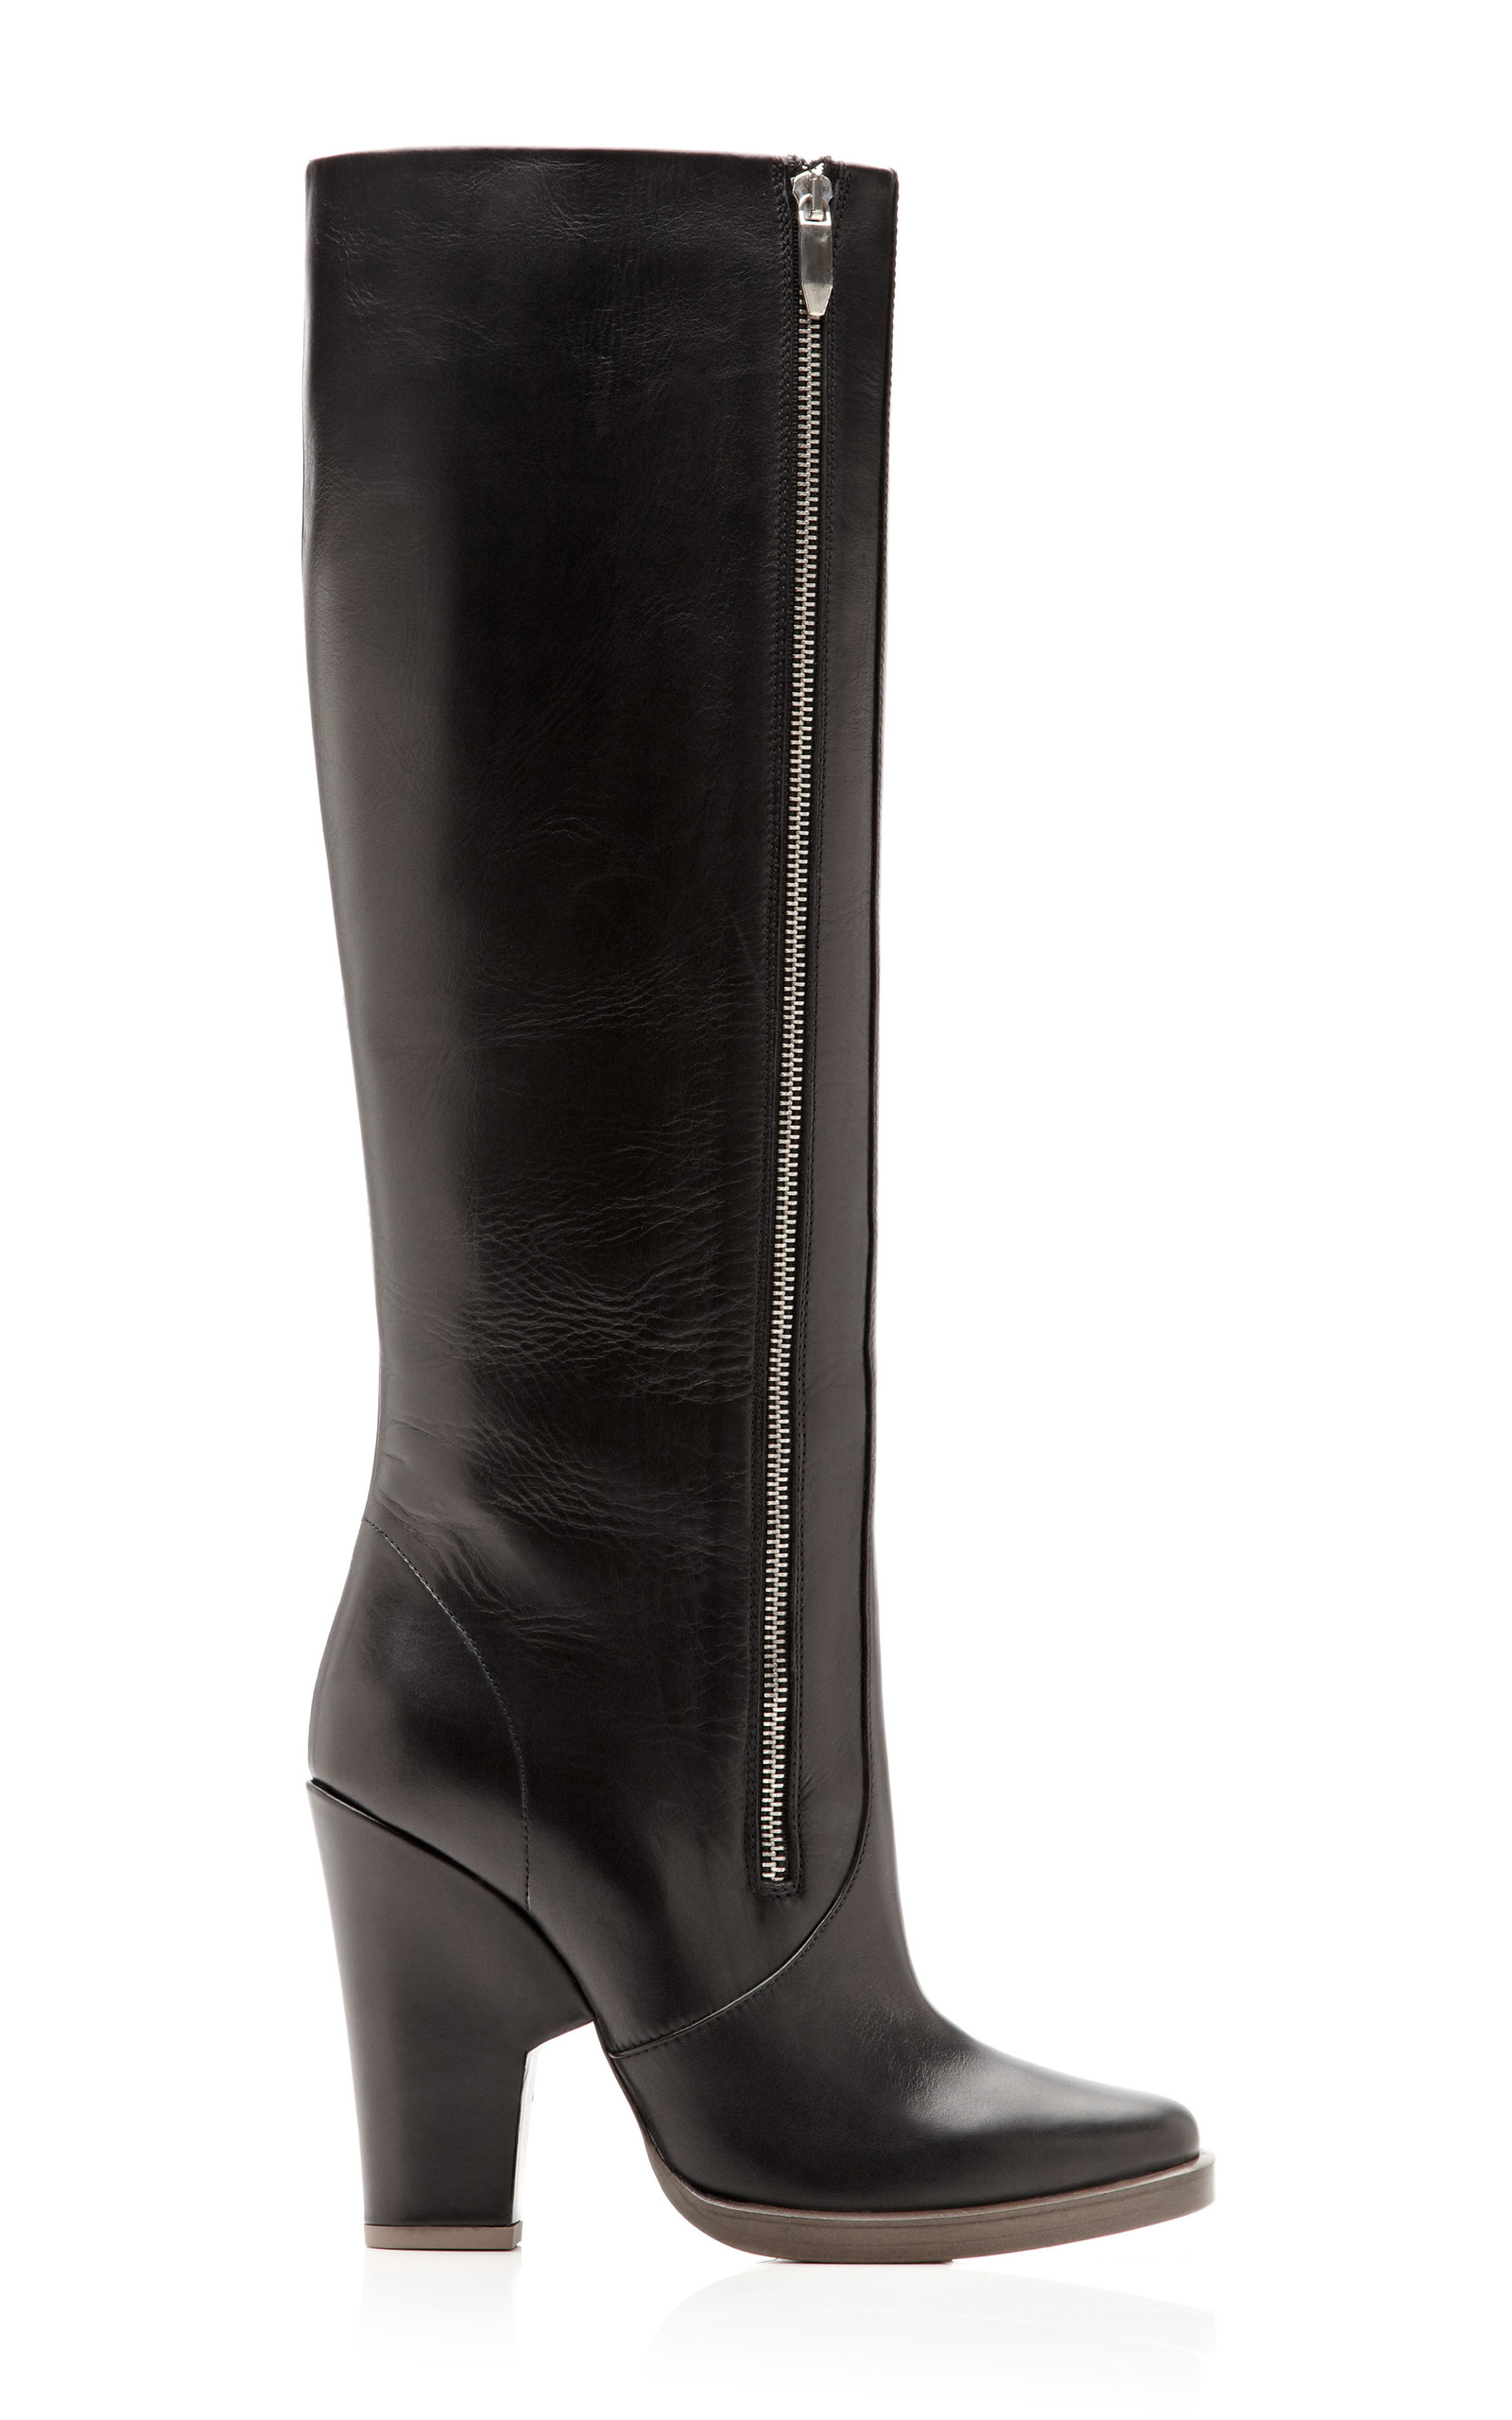 visit new sale outlet Theyskens' Theory Leather Knee-High Boots outlet tumblr shop for sale Lg3Kx